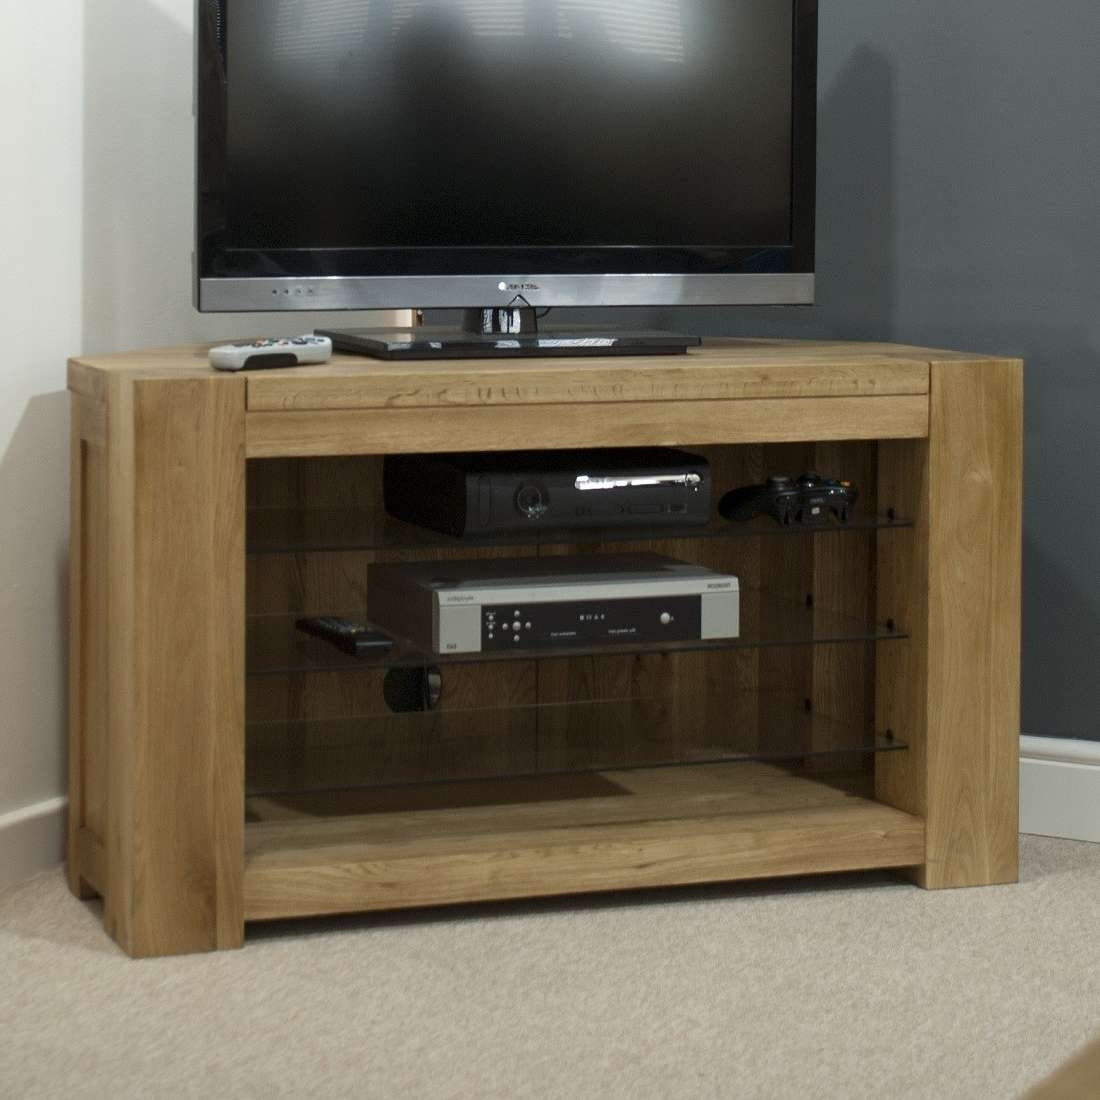 Trend Solid Oak Corner Tv Unit | Oak Furniture Uk Pertaining To Corner Oak Tv Stands For Flat Screen (View 10 of 15)